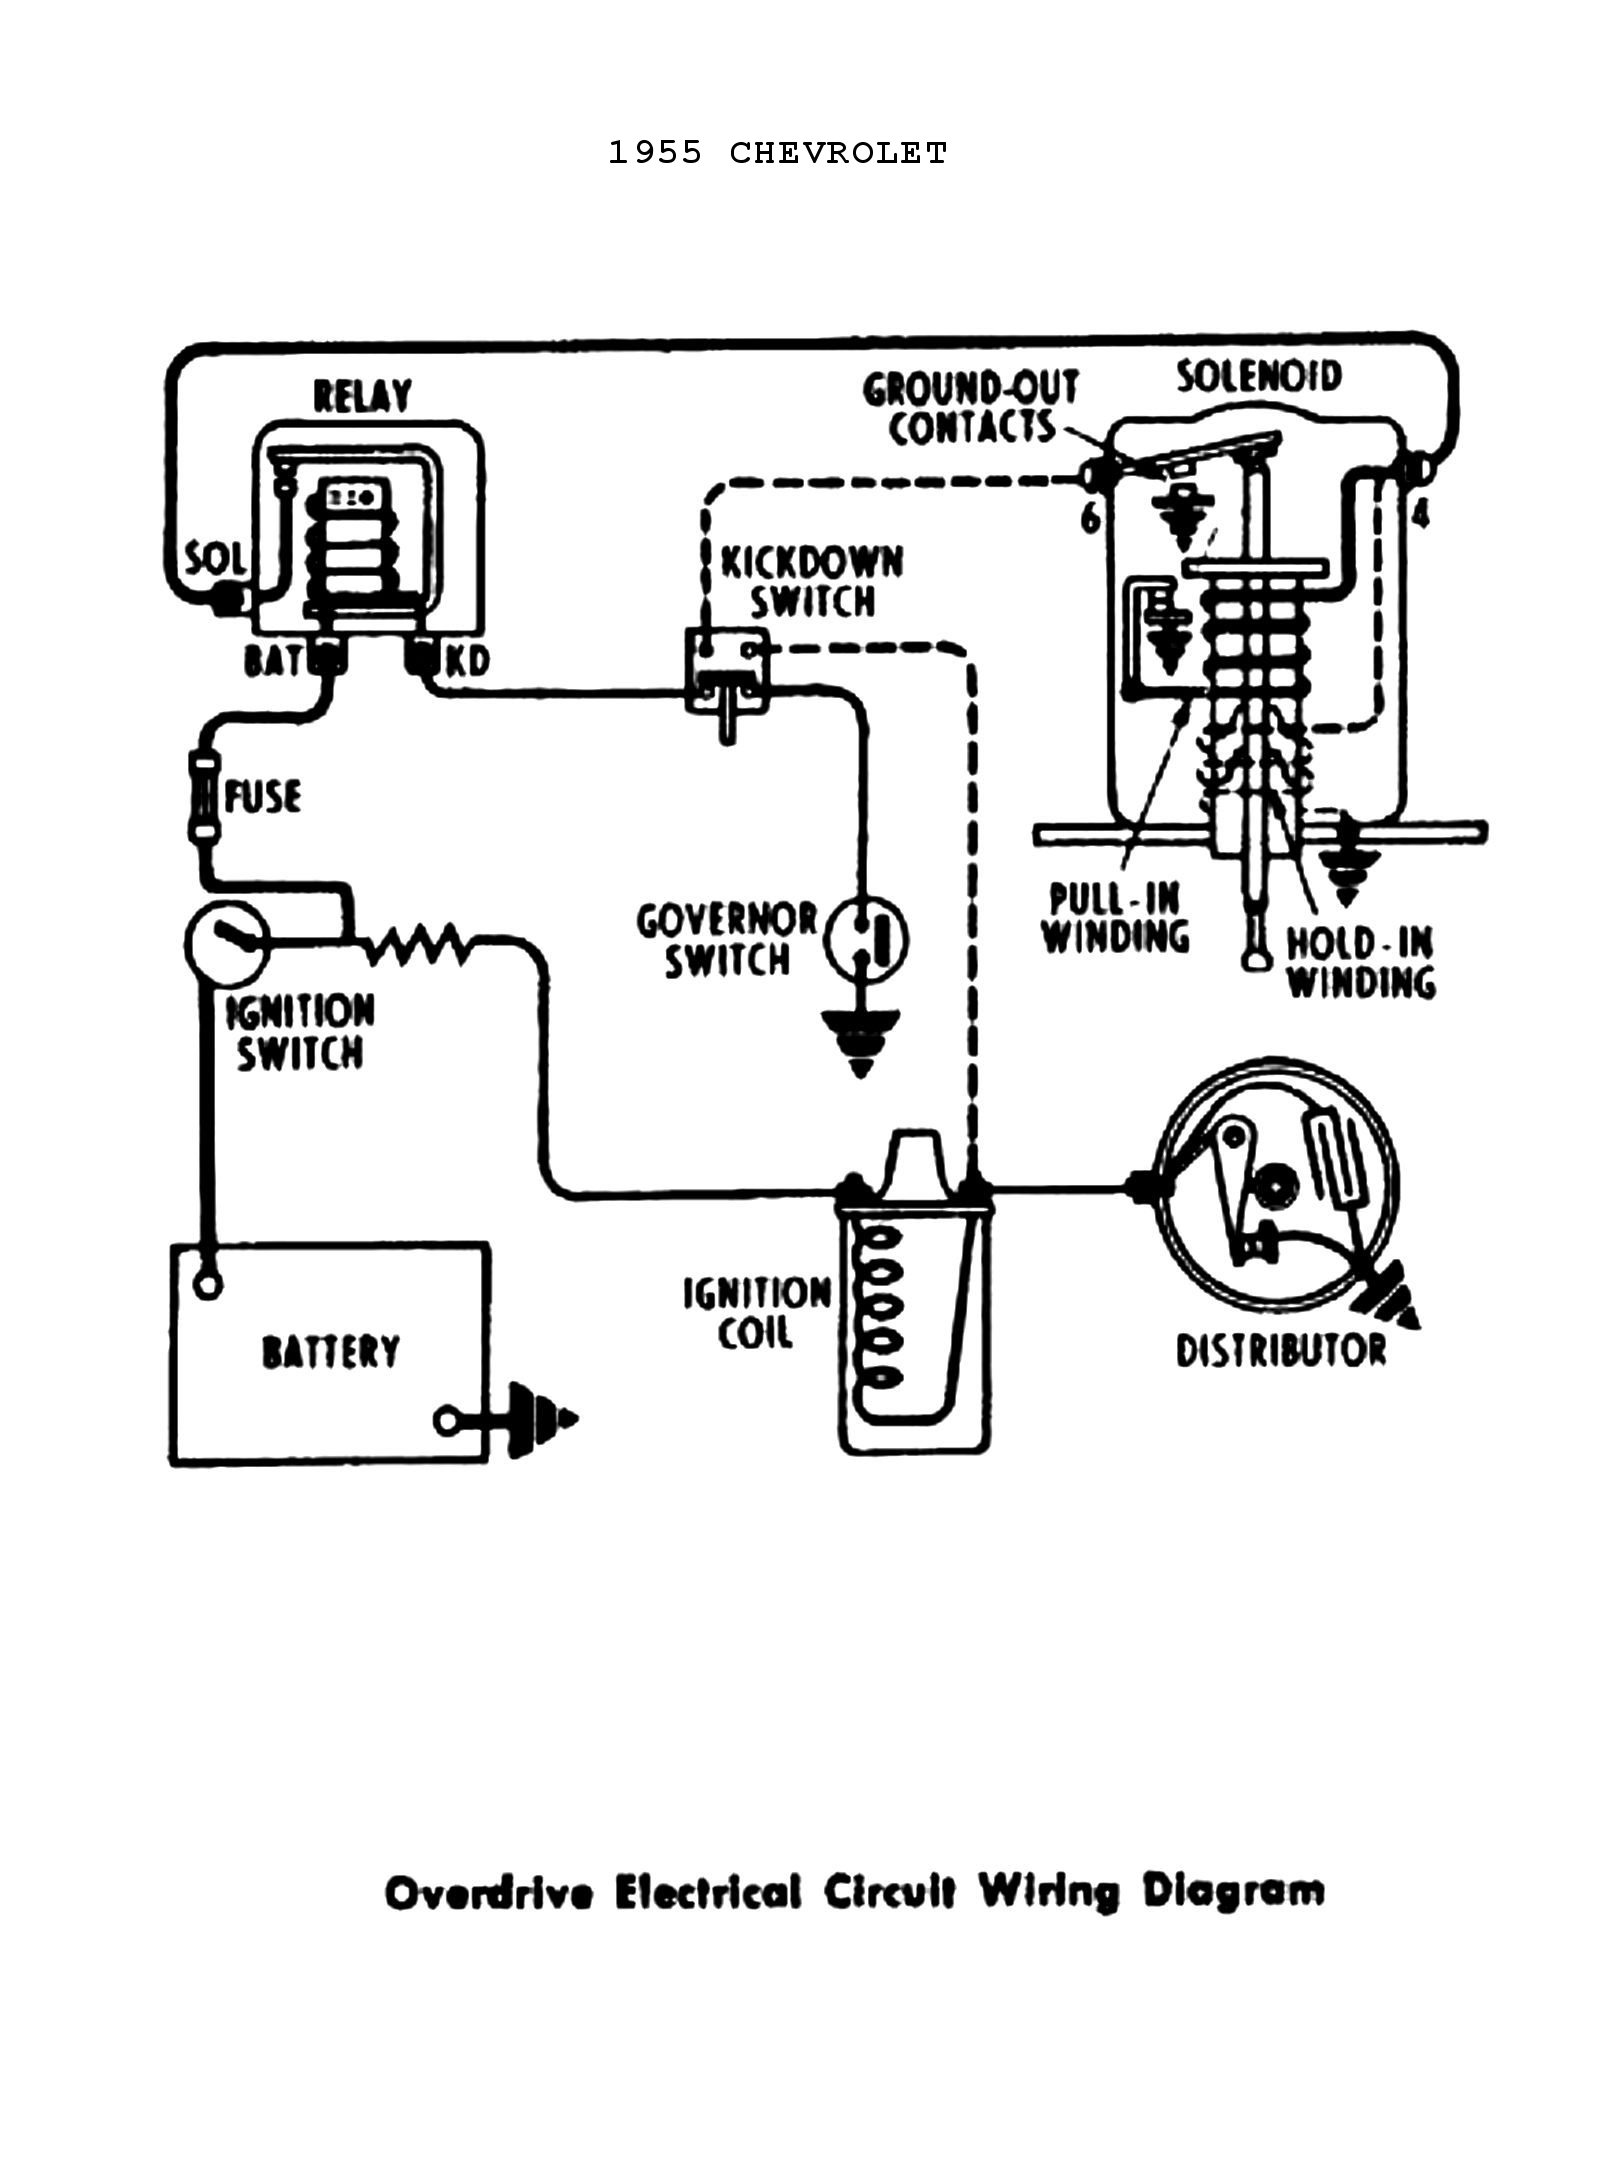 1983 chevy ignition switch wiring diagram search for wiring diagrams u2022 rh stephenpoon co